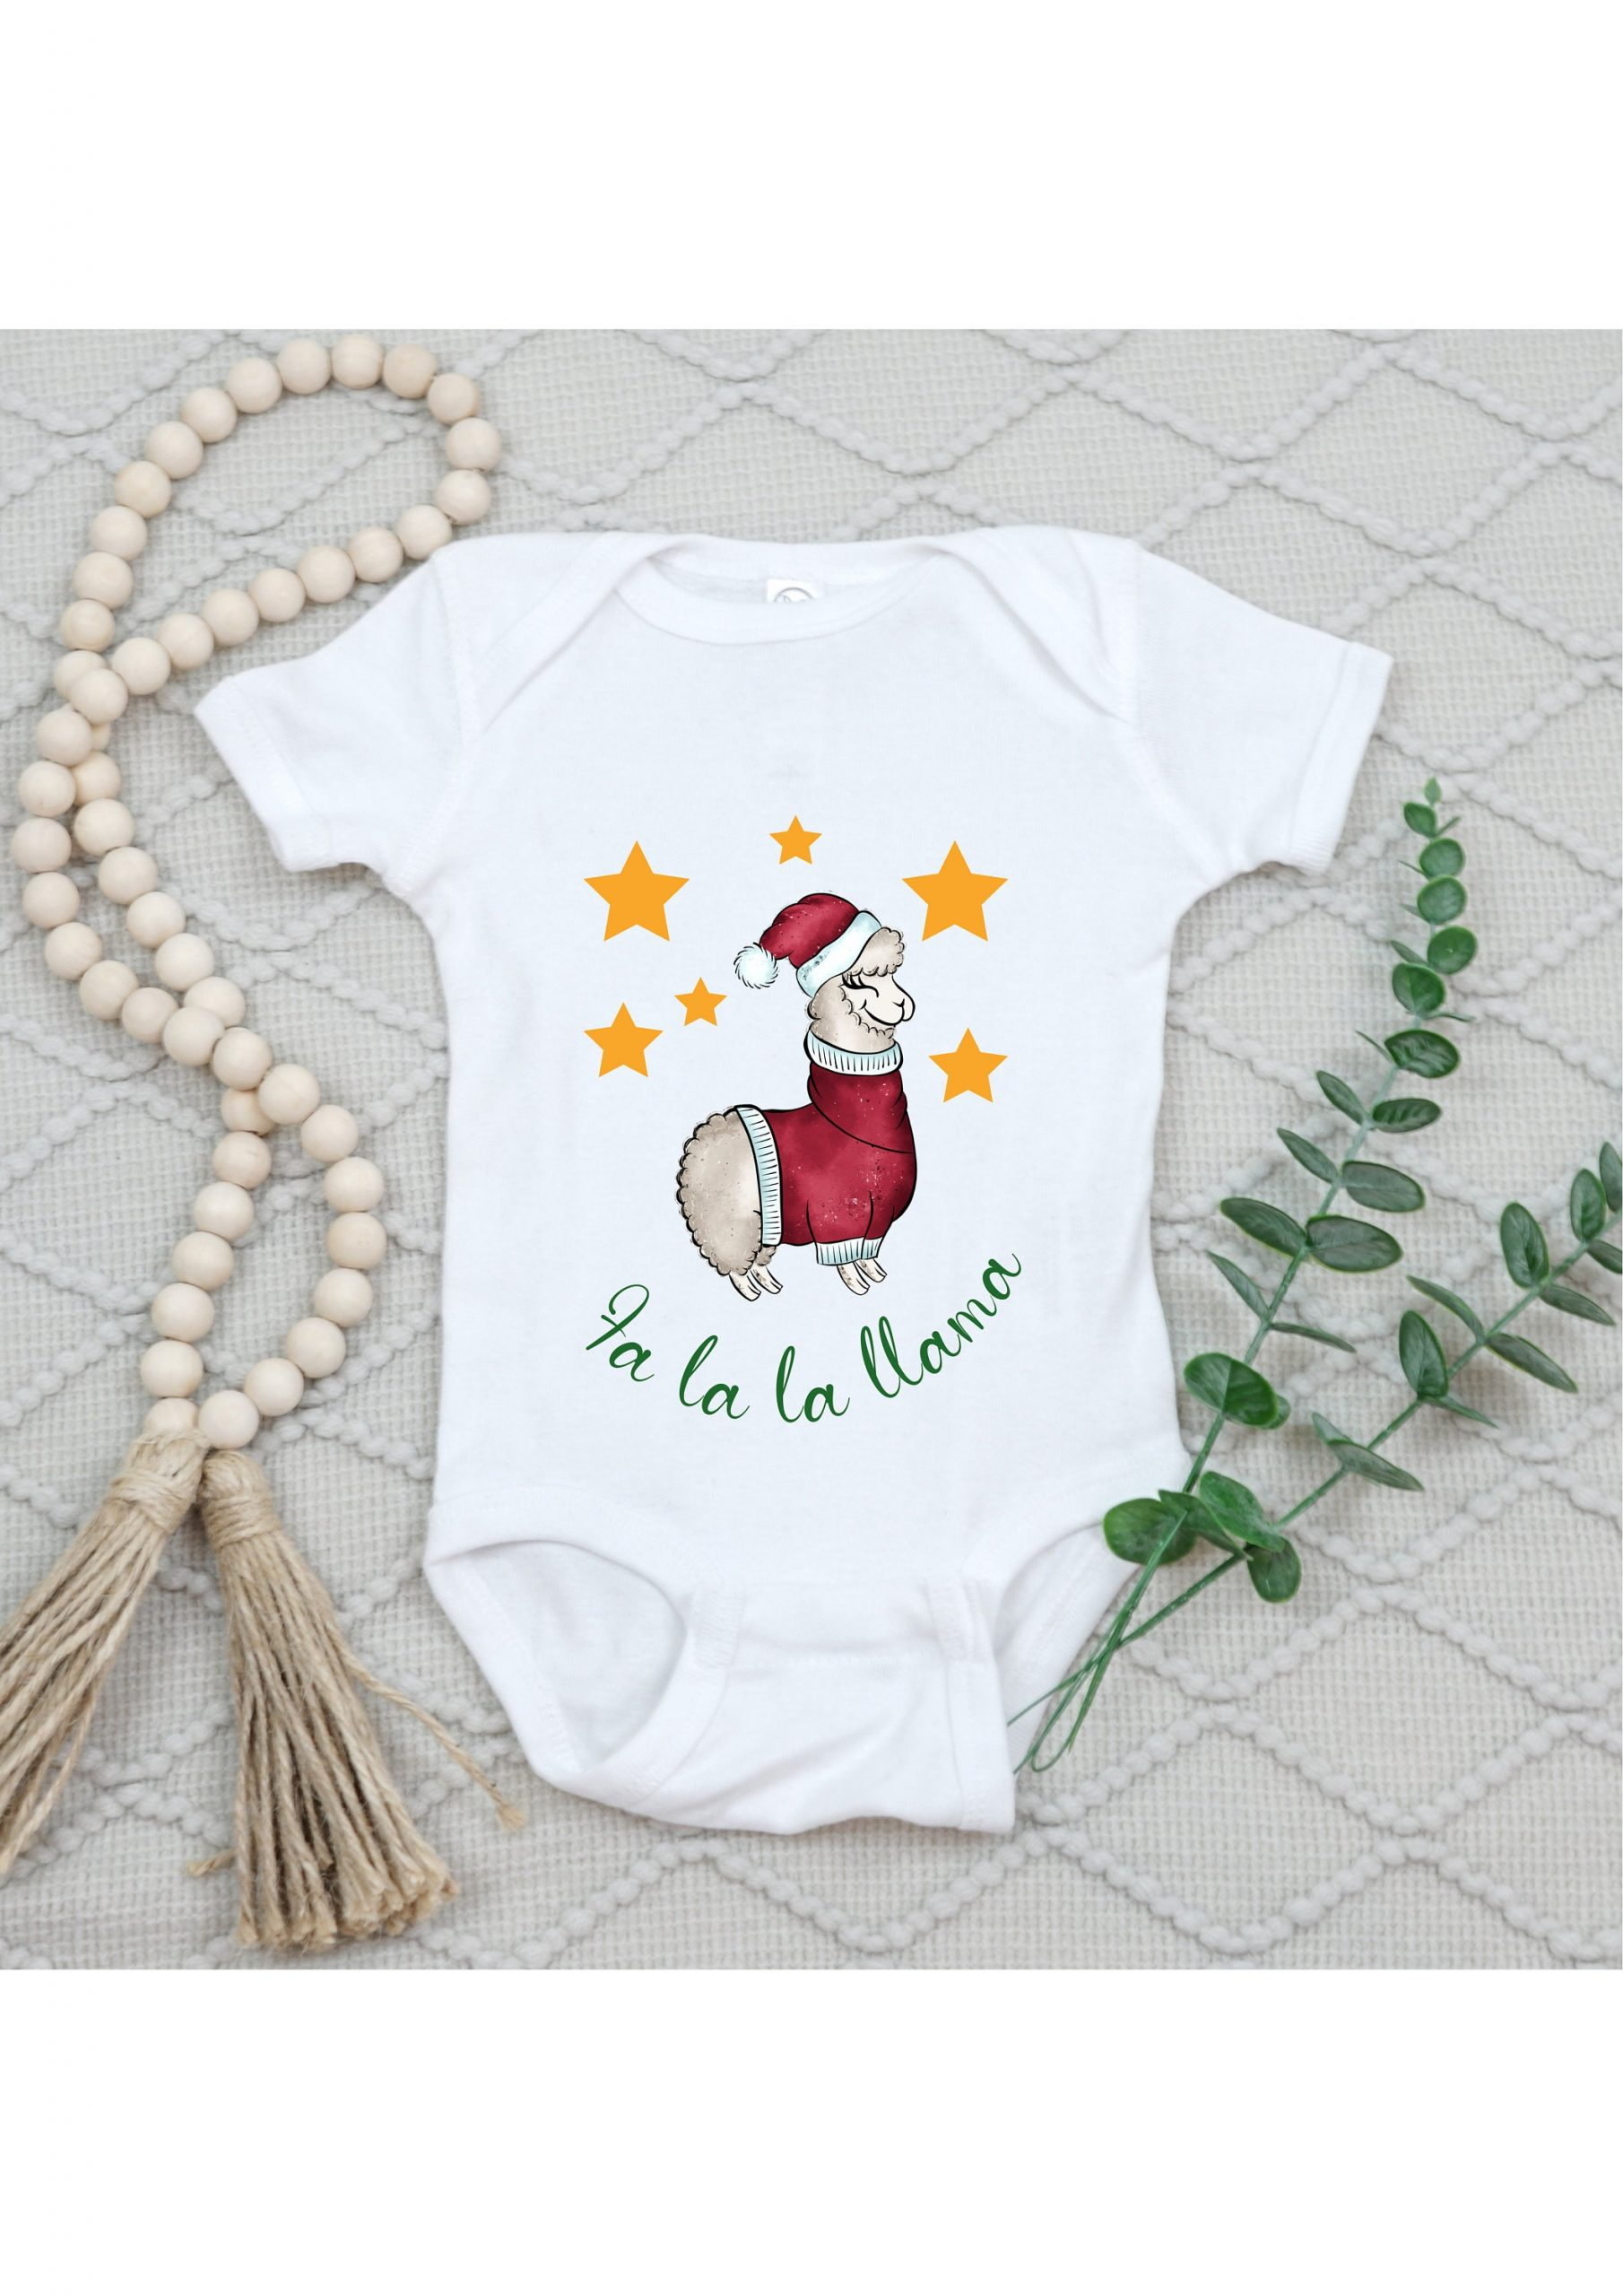 Llama Christmas Baby Onsie, New Gift, First Present, Funny Holidays Jumpsuit, Unisex Clothing For Kids, Cute Gift